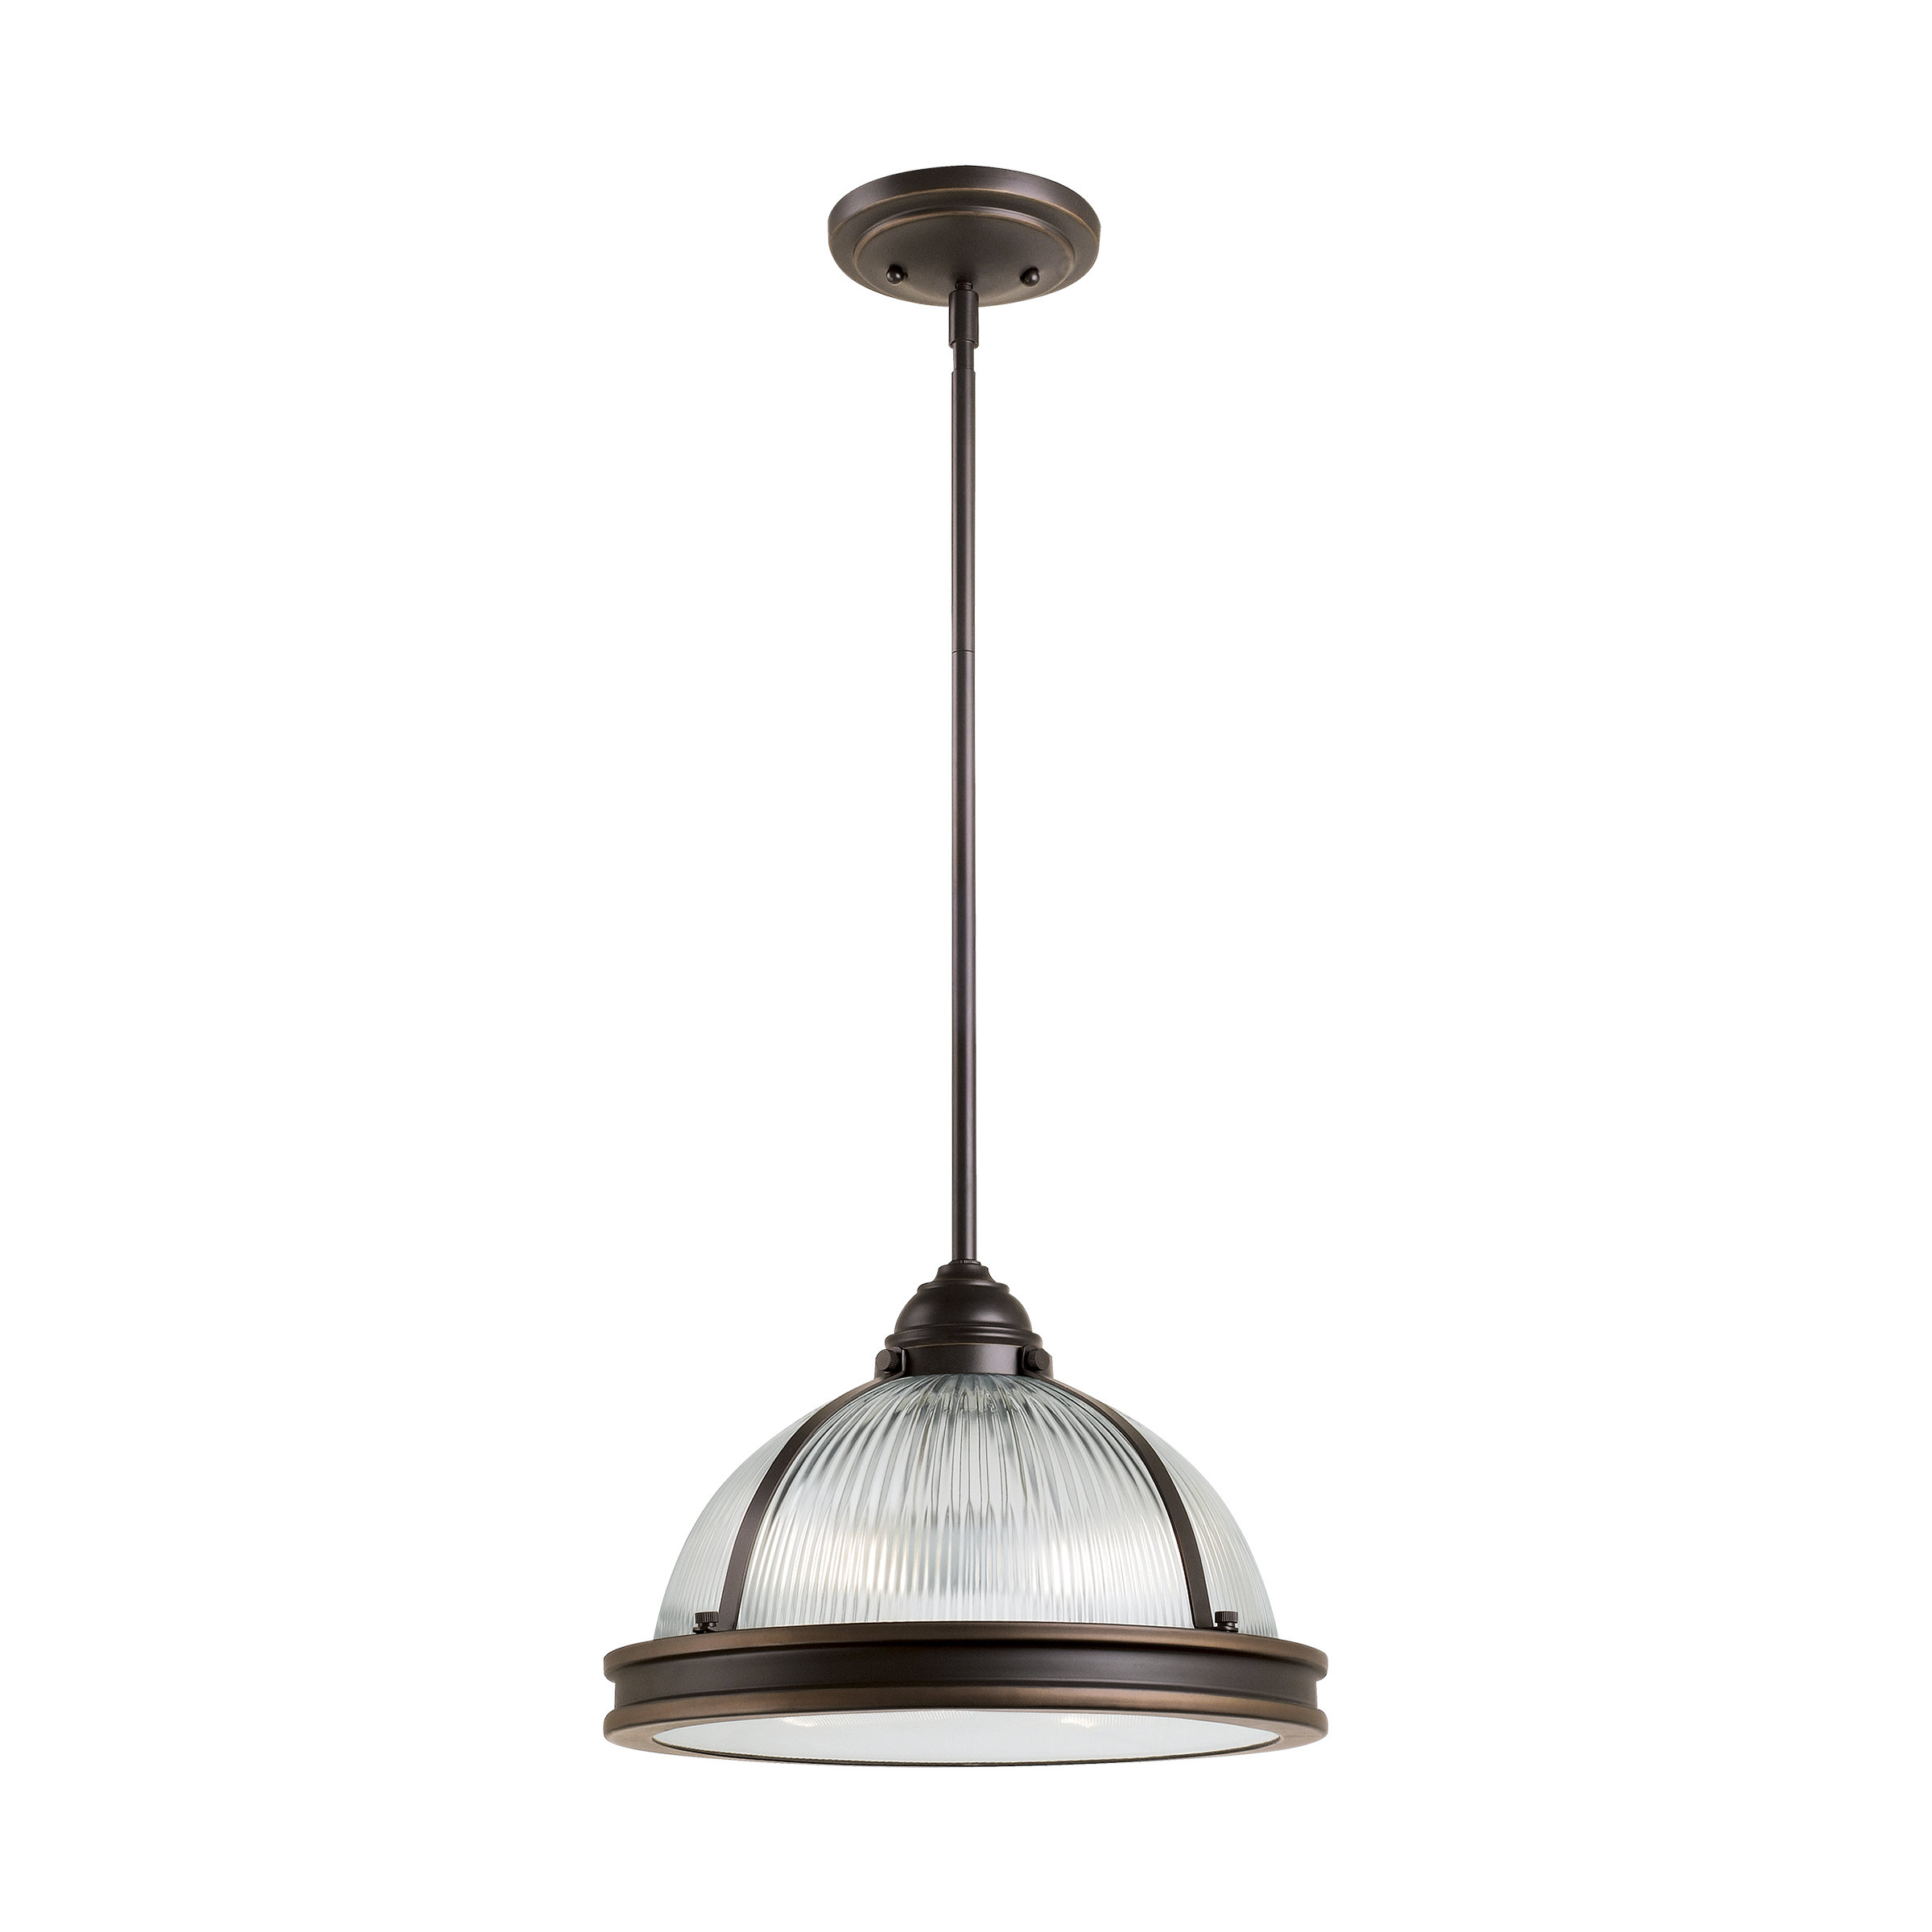 Granville 2 Light Single Dome Pendant For Priston 1 Light Single Dome Pendants (View 10 of 30)